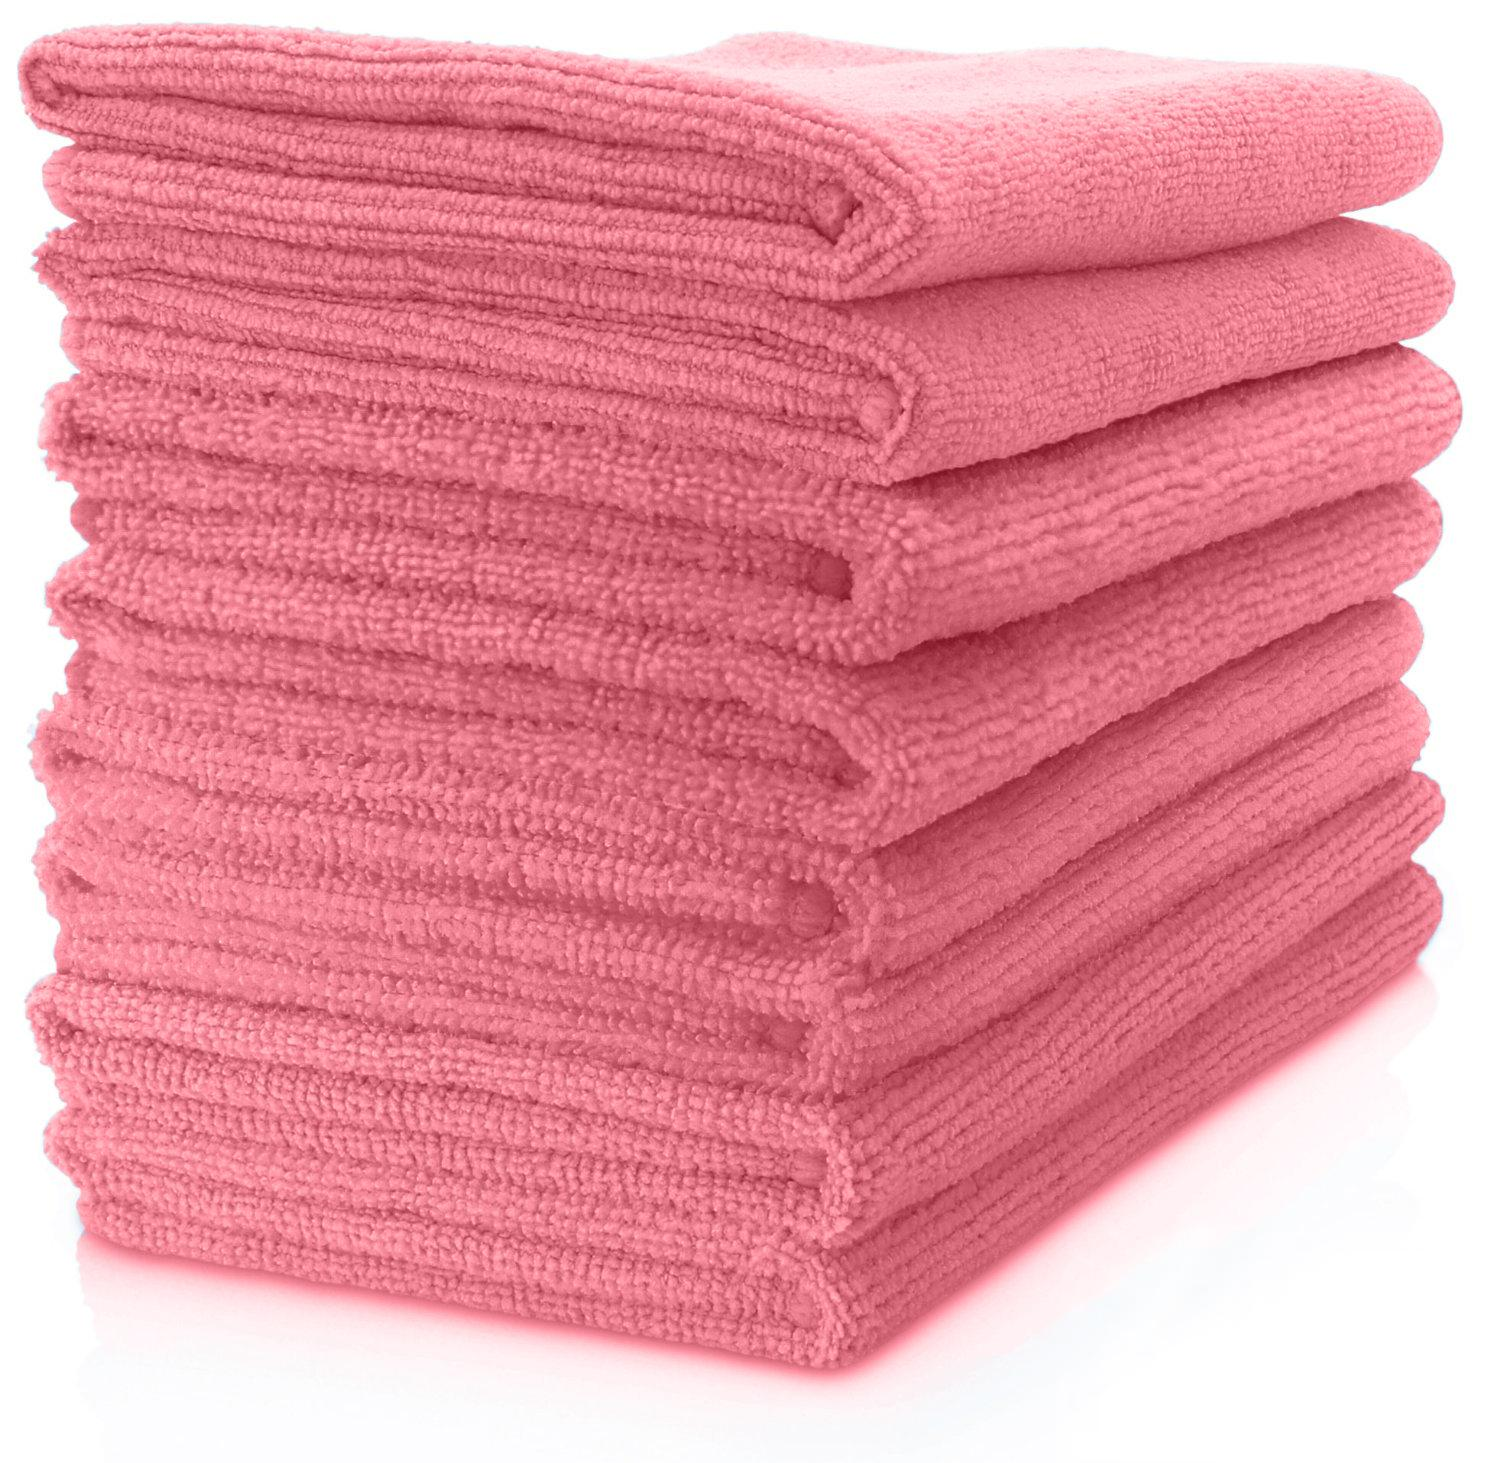 MAXIGLEAM Red/Pink Microfibre Cloths Pack of 50 Cloths 40x40cms